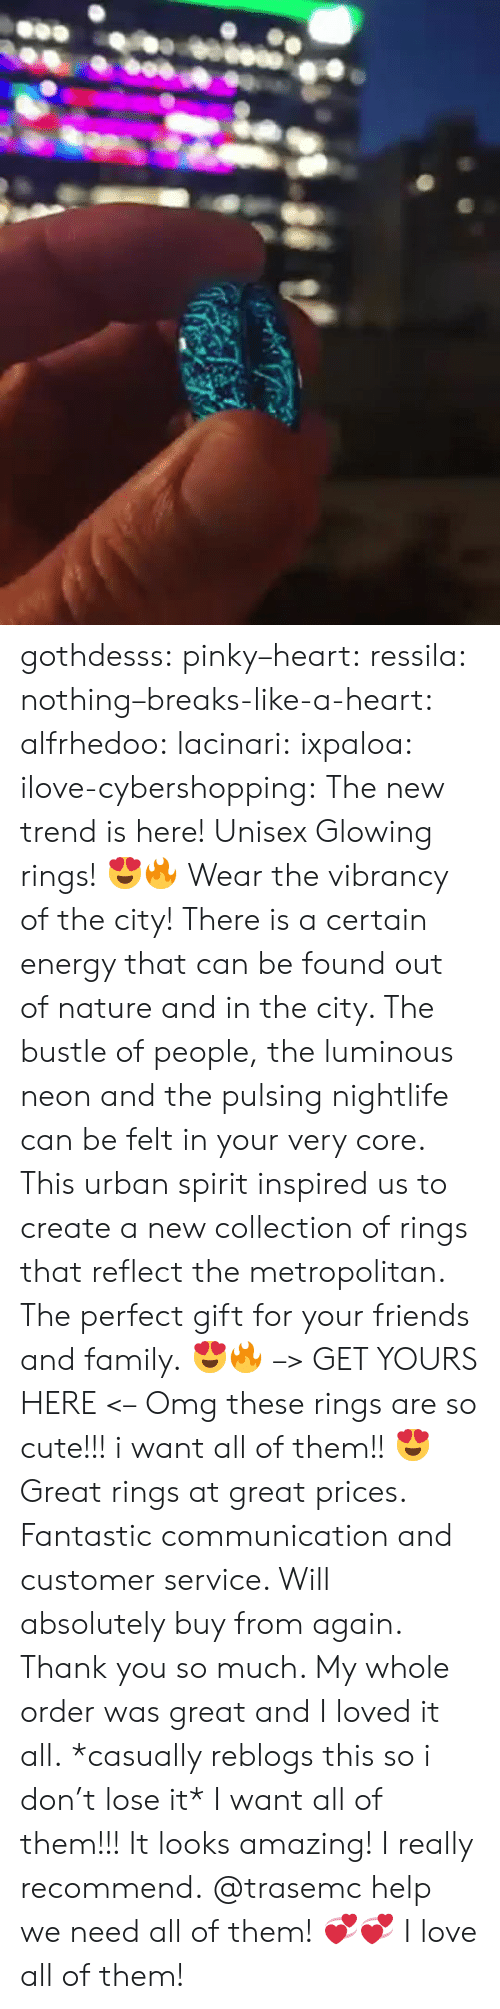 Loved It: gothdesss:  pinky–heart: ressila:  nothing–breaks-like-a-heart:  alfrhedoo:  lacinari:  ixpaloa:  ilove-cybershopping:  The new trend is here! Unisex Glowing rings! 😍🔥 Wear the vibrancy of the city! There is a certain energy that can be found out of nature and in the city. The bustle of people, the luminous neon and the pulsing nightlife can be felt in your very core. This urban spirit inspired us to create a new collection of rings that reflect the metropolitan. The perfect gift for your friends and family. 😍🔥 –> GET YOURS HERE <–  Omg these rings are so cute!!! i want all of them!! 😍  Great rings at great prices. Fantastic communication and customer service. Will absolutely buy from again. Thank you so much. My whole order was great and I loved it all.  *casually reblogs this so i don't lose it*  I want all of them!!!  It looks amazing! I really recommend.  @trasemc help we need all of them! 💞💞  I love all of them!